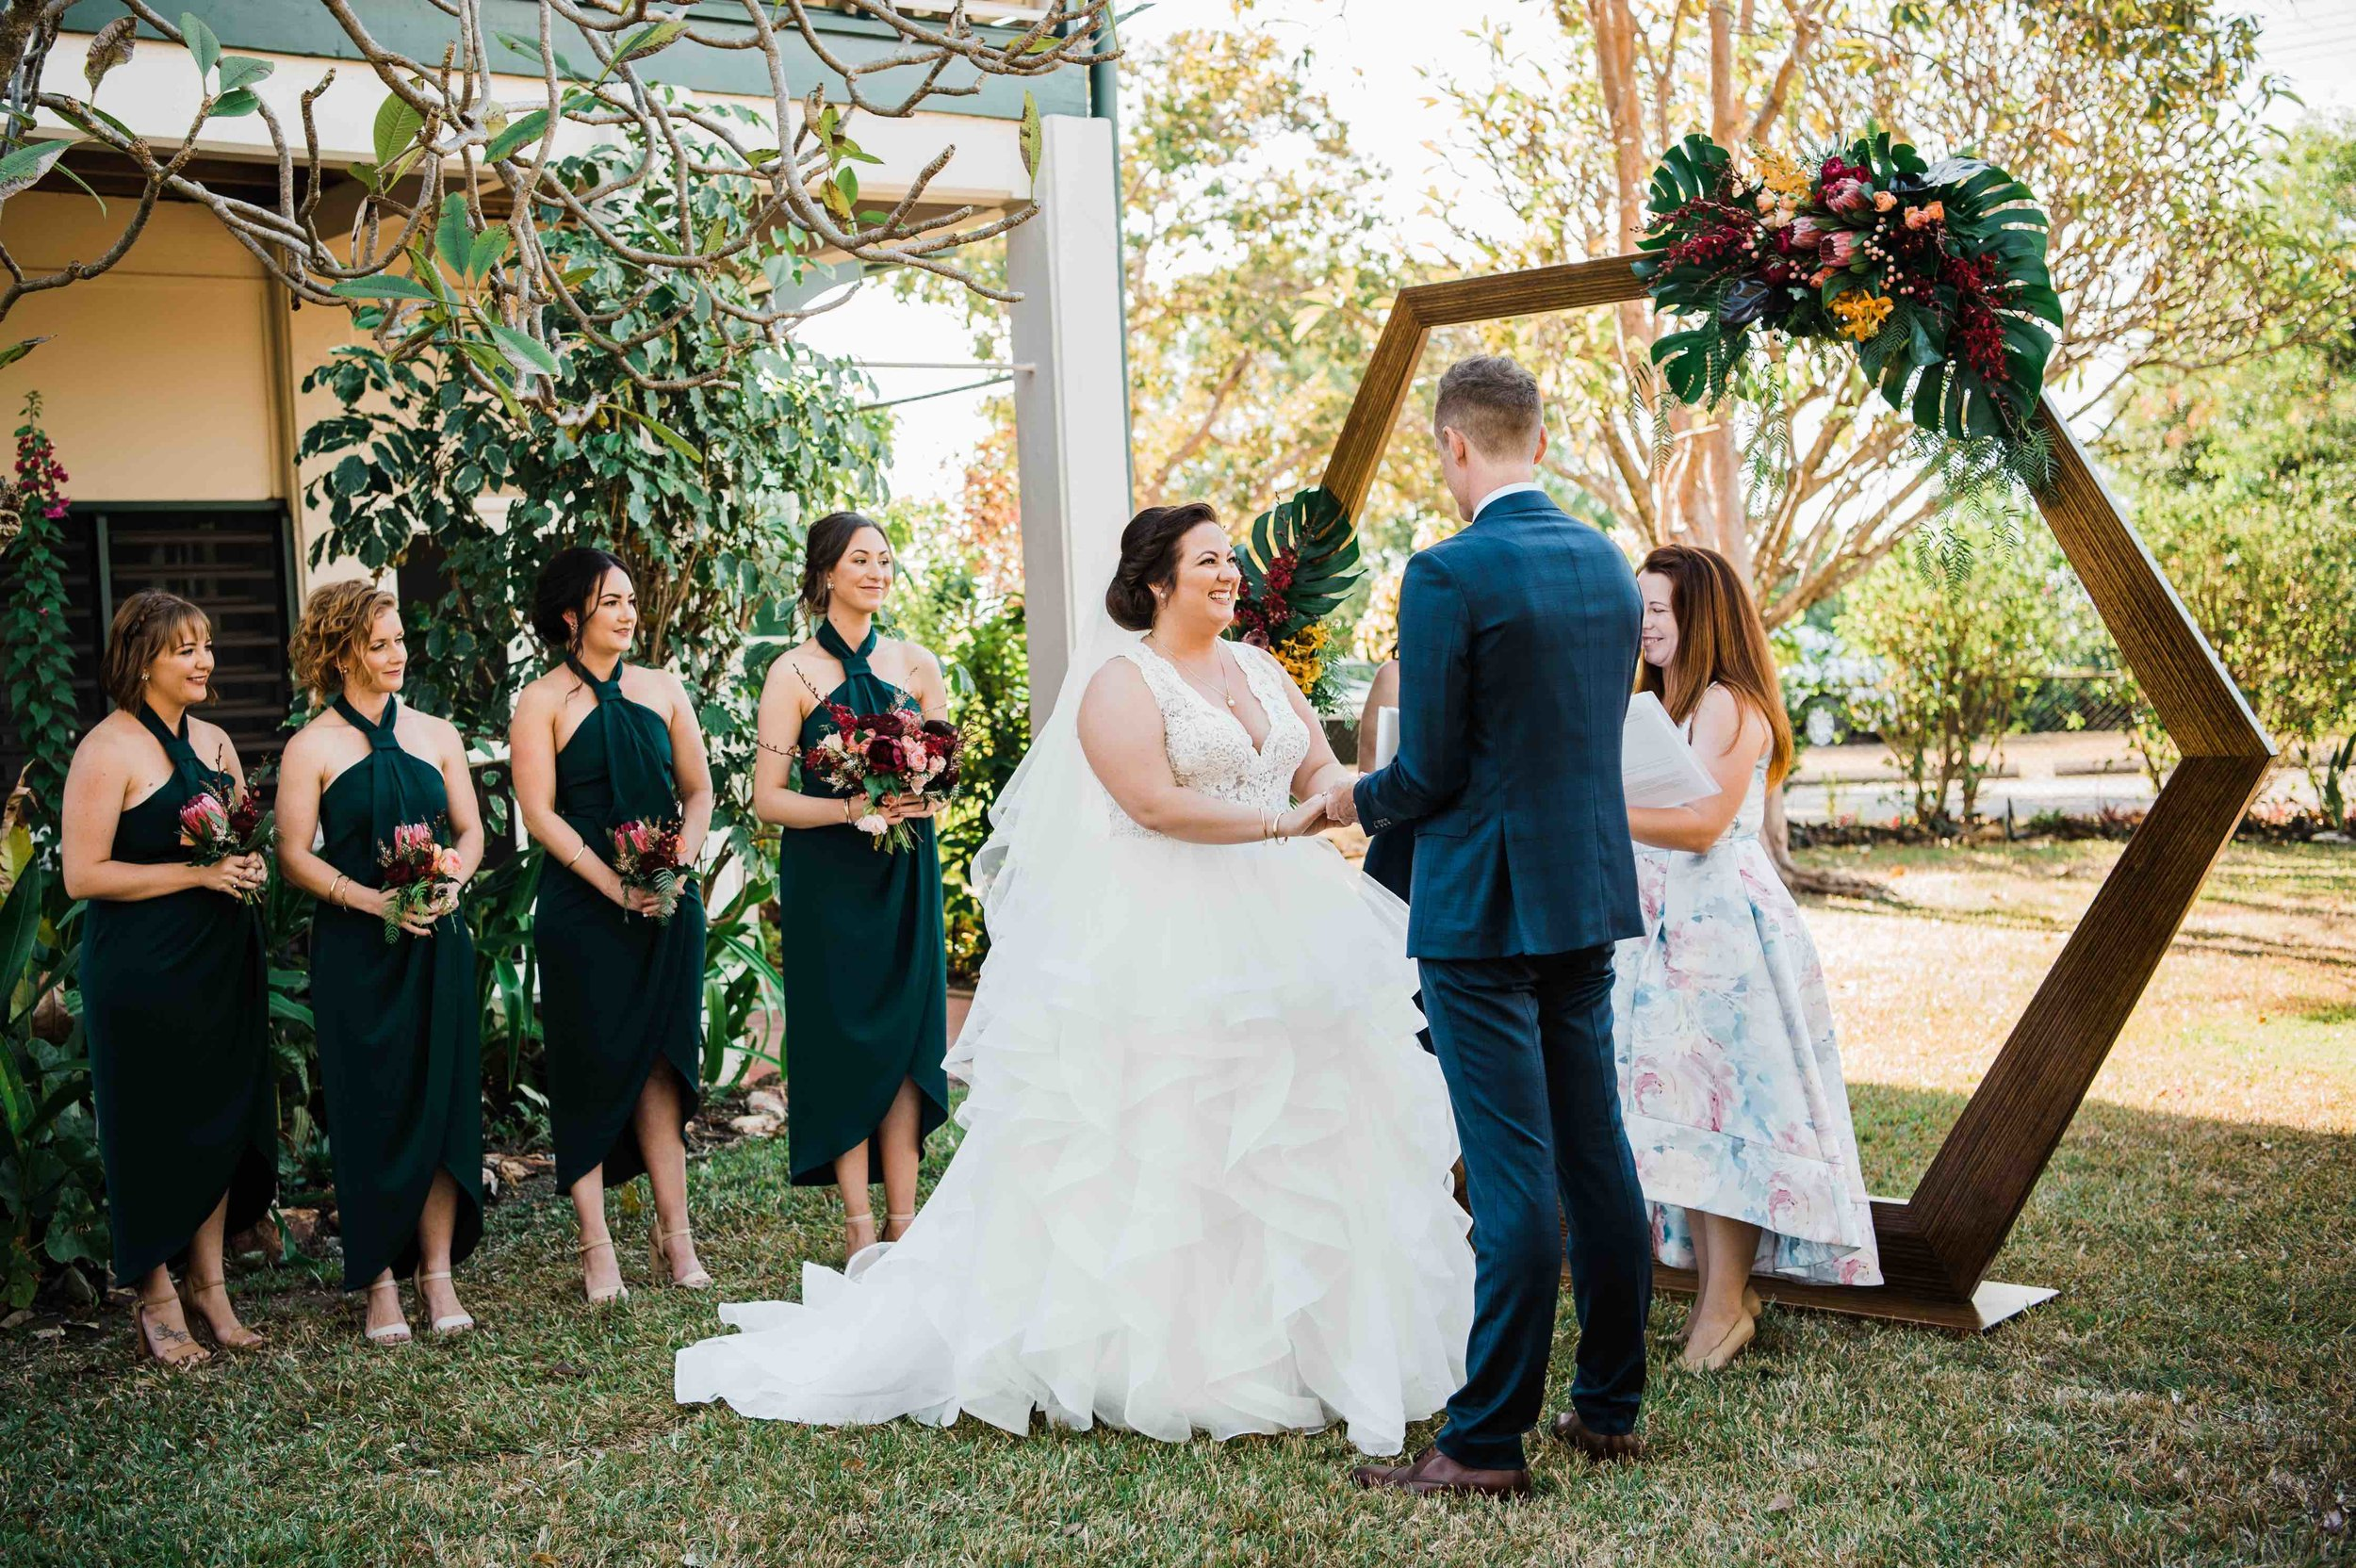 hexagonal arch ceremony backdrop dressed with native and tropical flowers